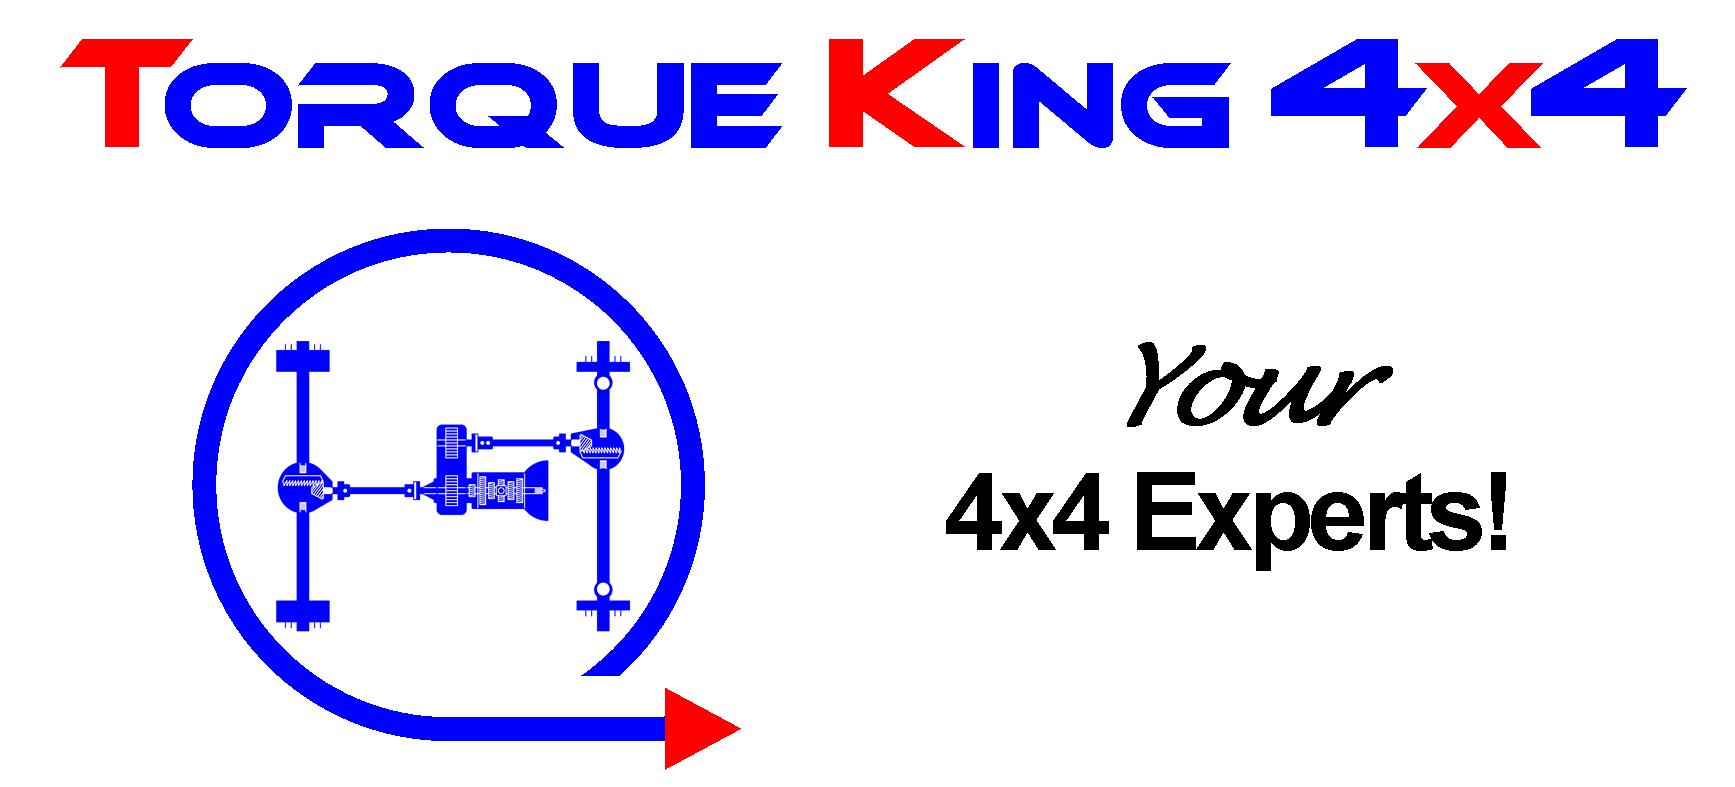 4x4 Tech Inc dba Torque King 4x4